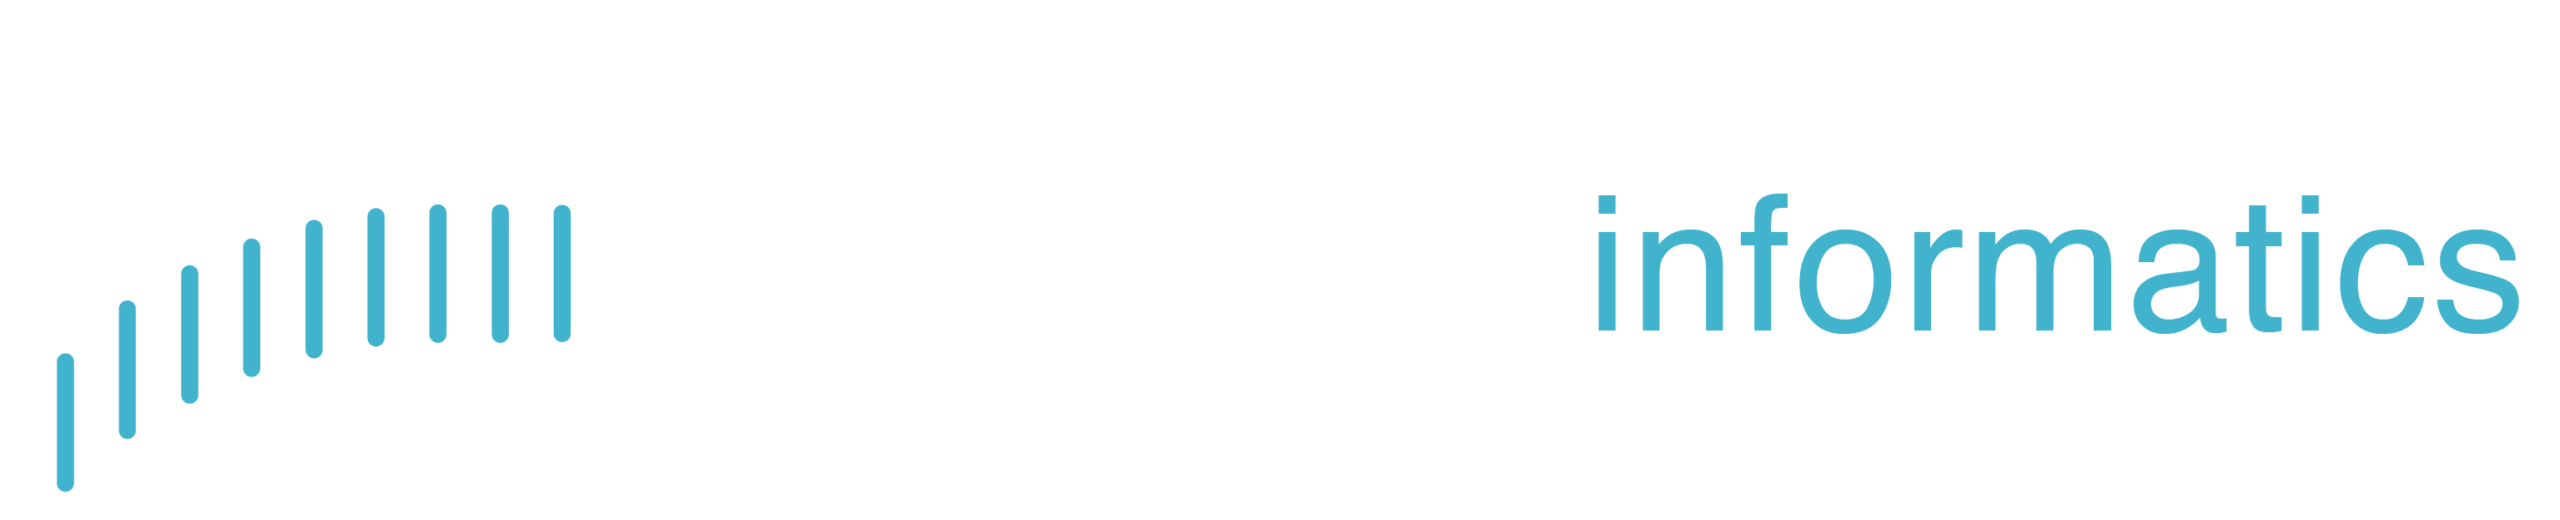 Cambridge Informatics logo